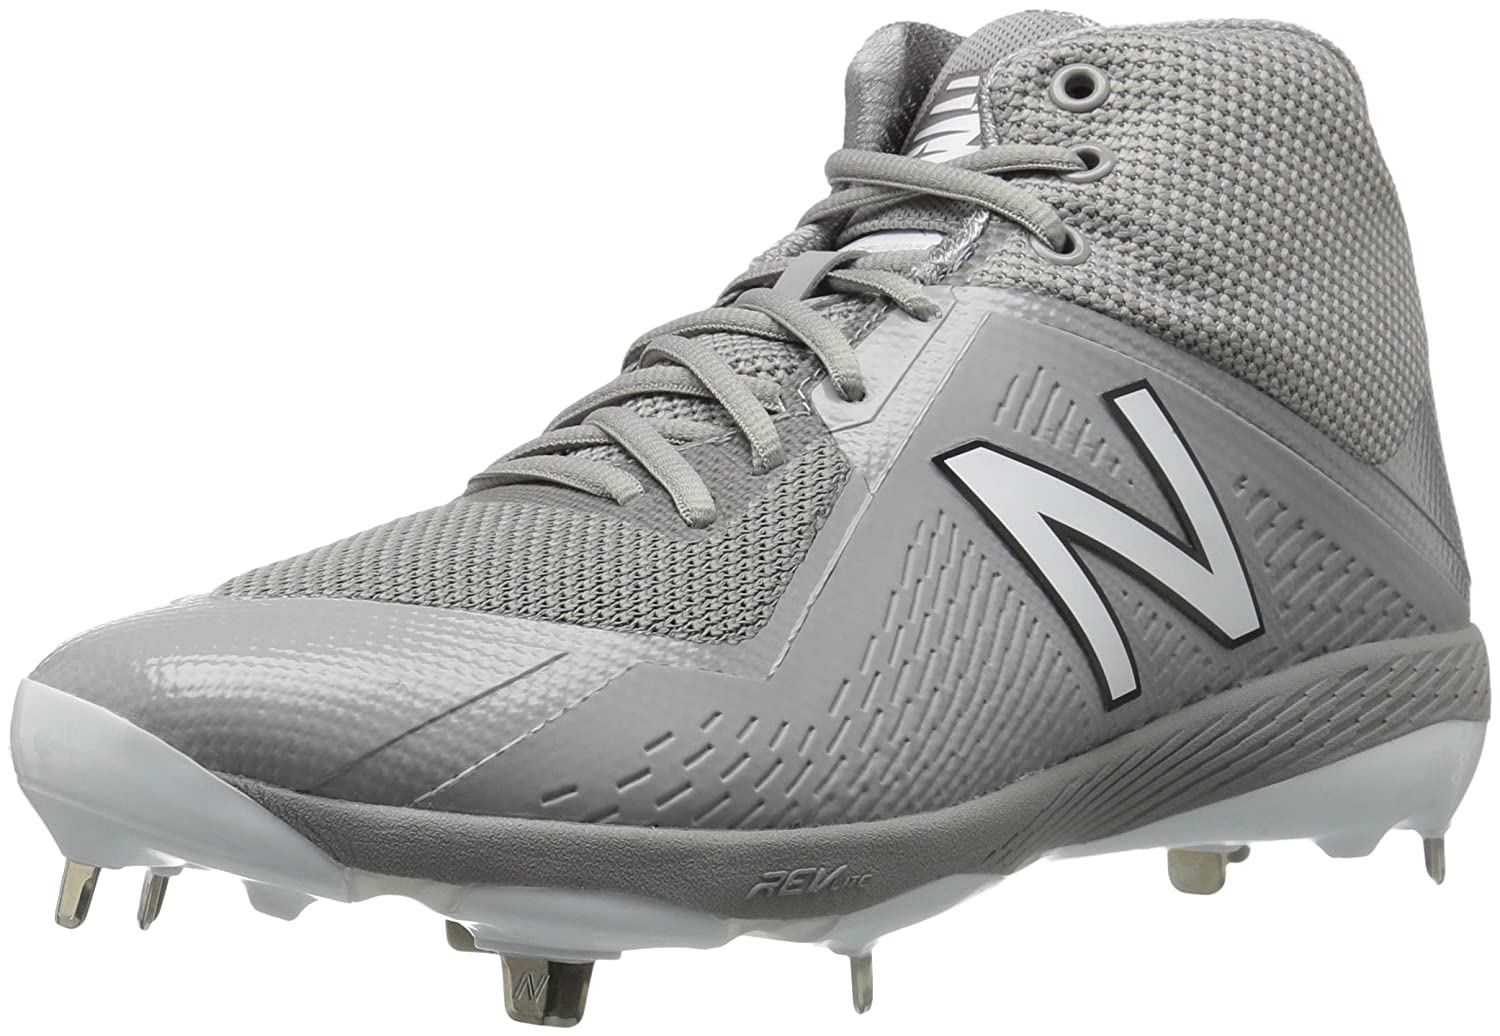 New Balance Men's M4040v4 Metal Baseball Shoe B01MTQ8KL4 15 2E US|Grey